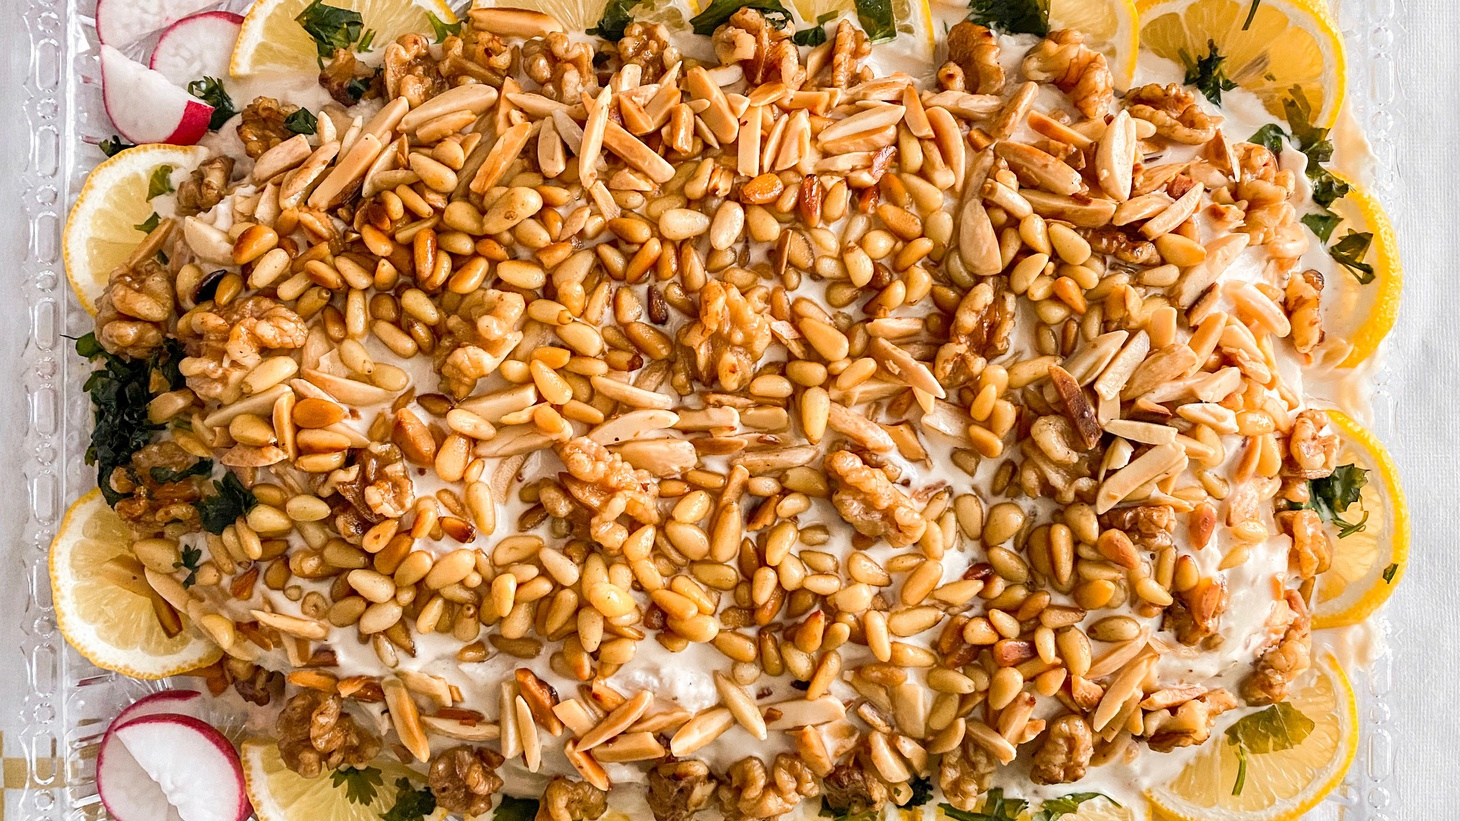 Bill Addison discovers homestyle Lebanese food not typically found on restaurant menus at Mama Lina Cooks, including this samke harra — fish cloaked in tahini sauce with layers of cilantro and walnuts, and topped with pine nuts, slivered almonds, and more walnuts.